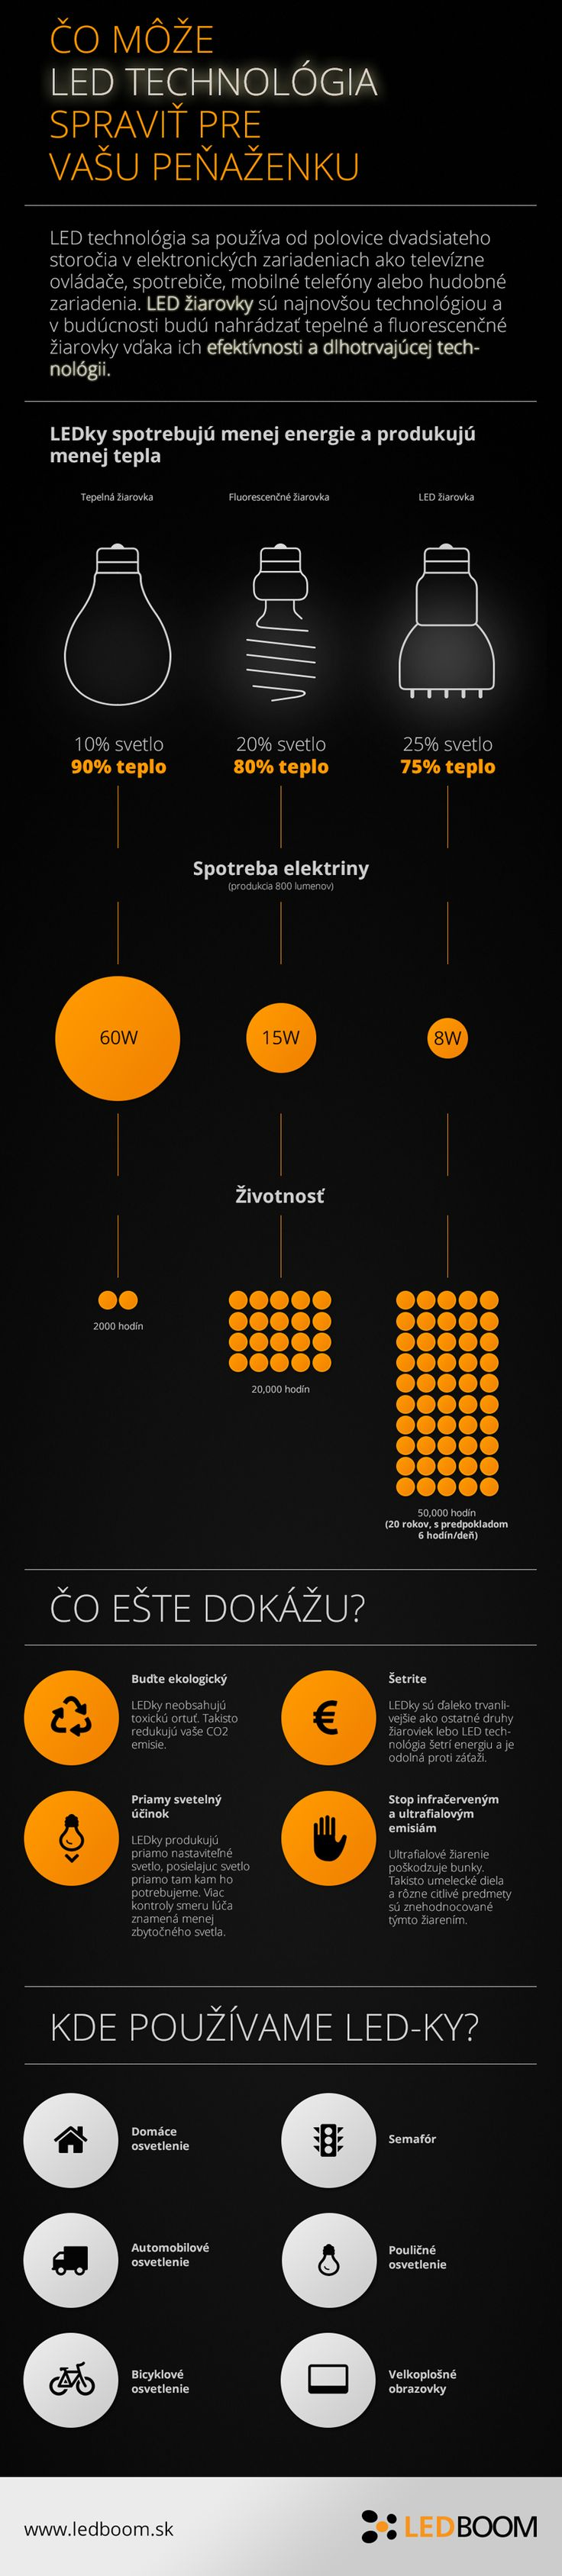 ledboom-infografika-export.png (800×3668)